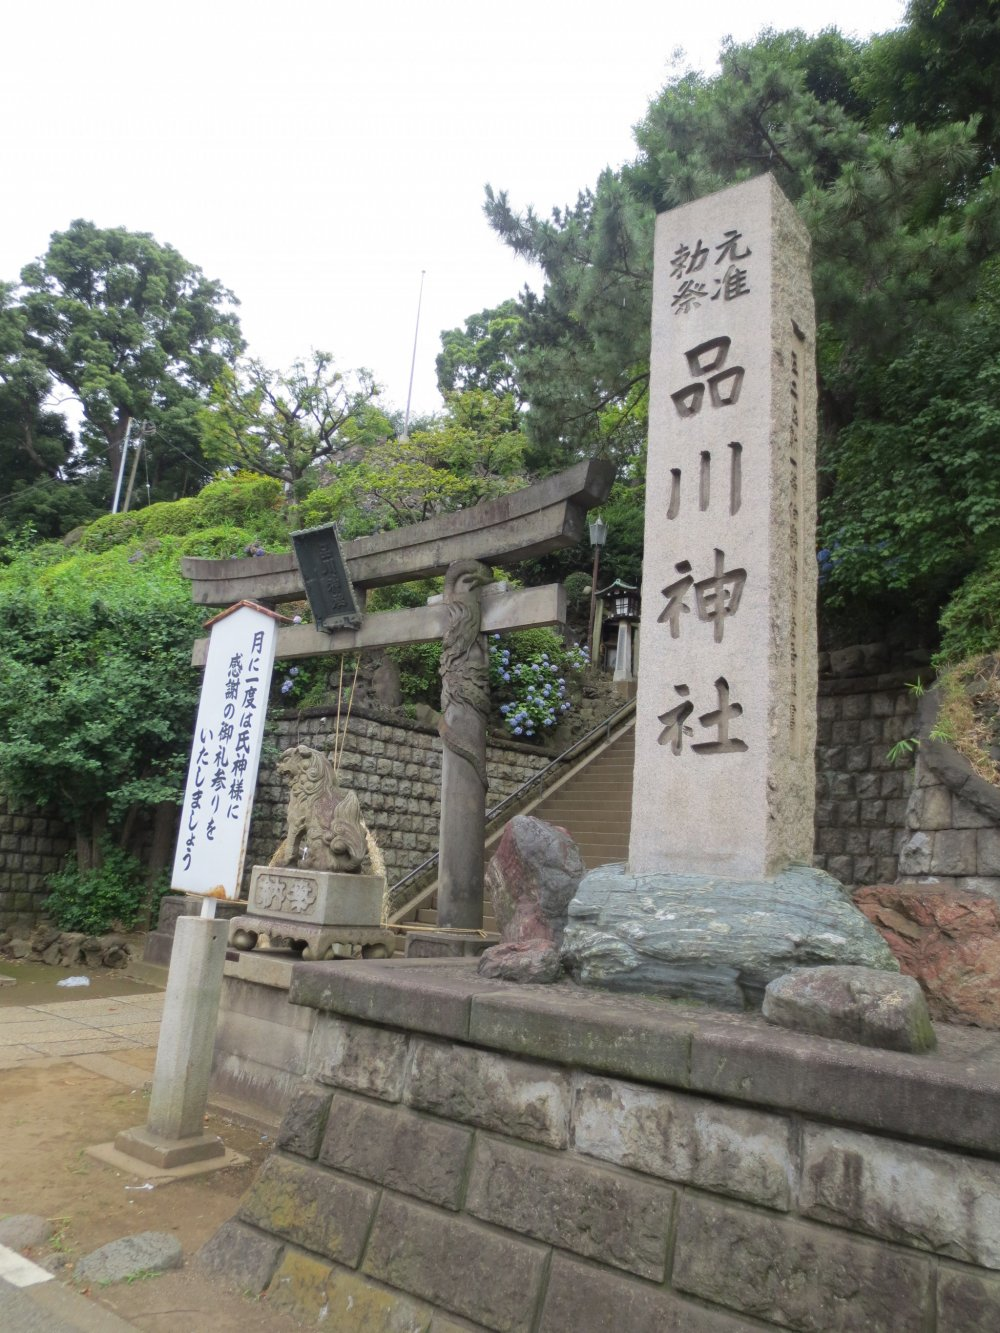 Shinagawa Shrine stone tablet and a sign encouraging people to come once a month